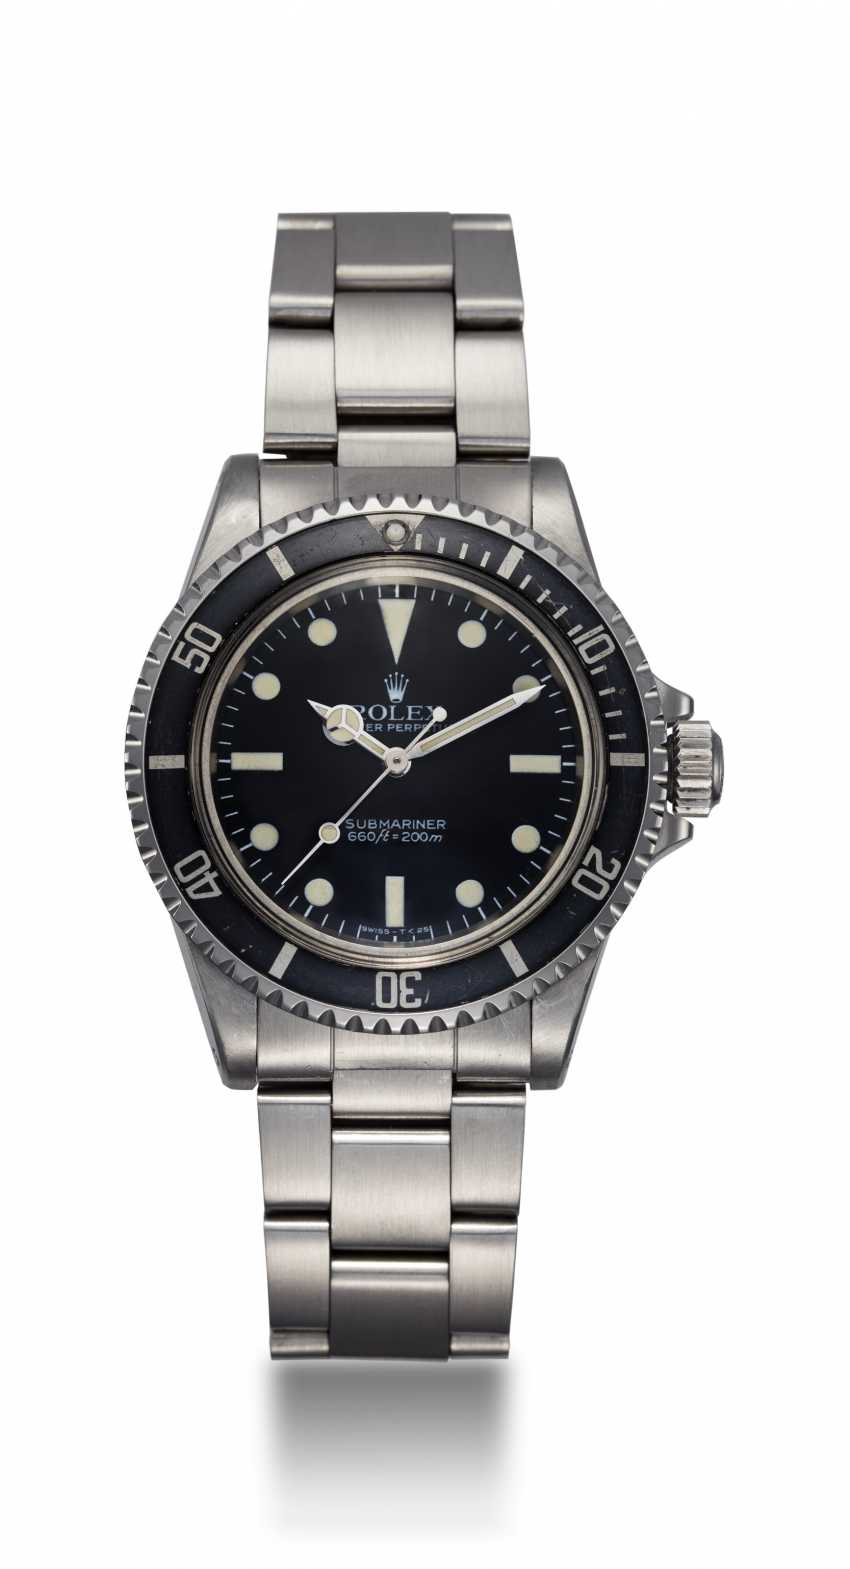 ROLEX. A STEEL SUBMARINER WITH MAXI DIAL, REF. 5513 - photo 3